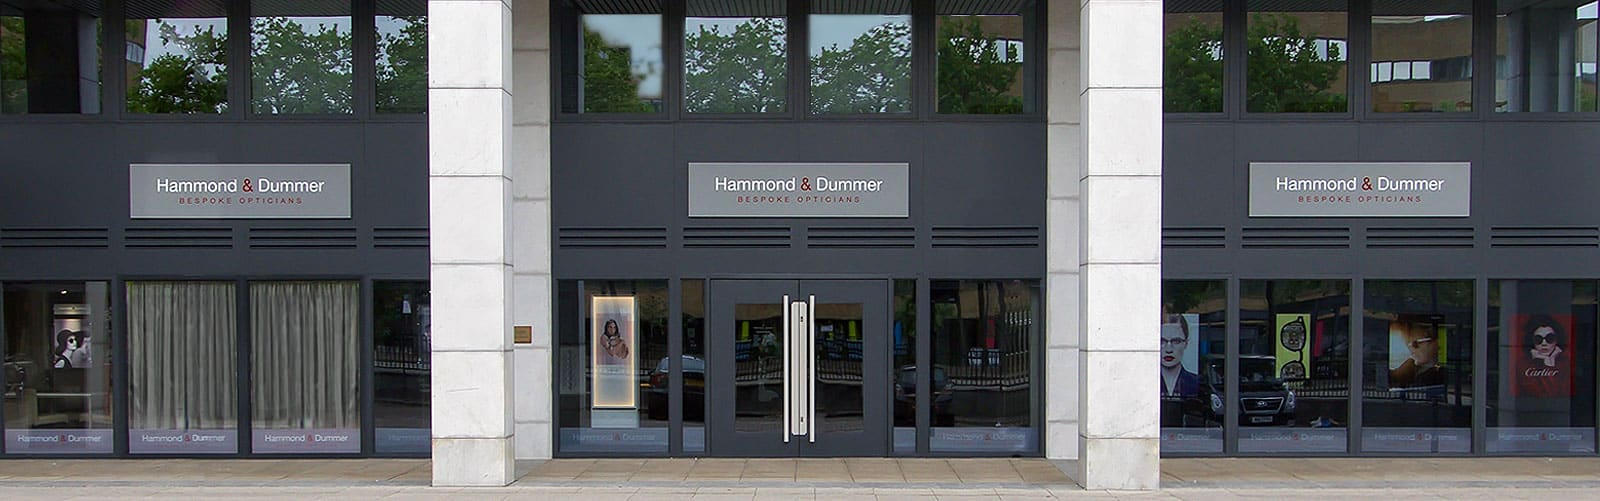 Hammond & Dummer opticians